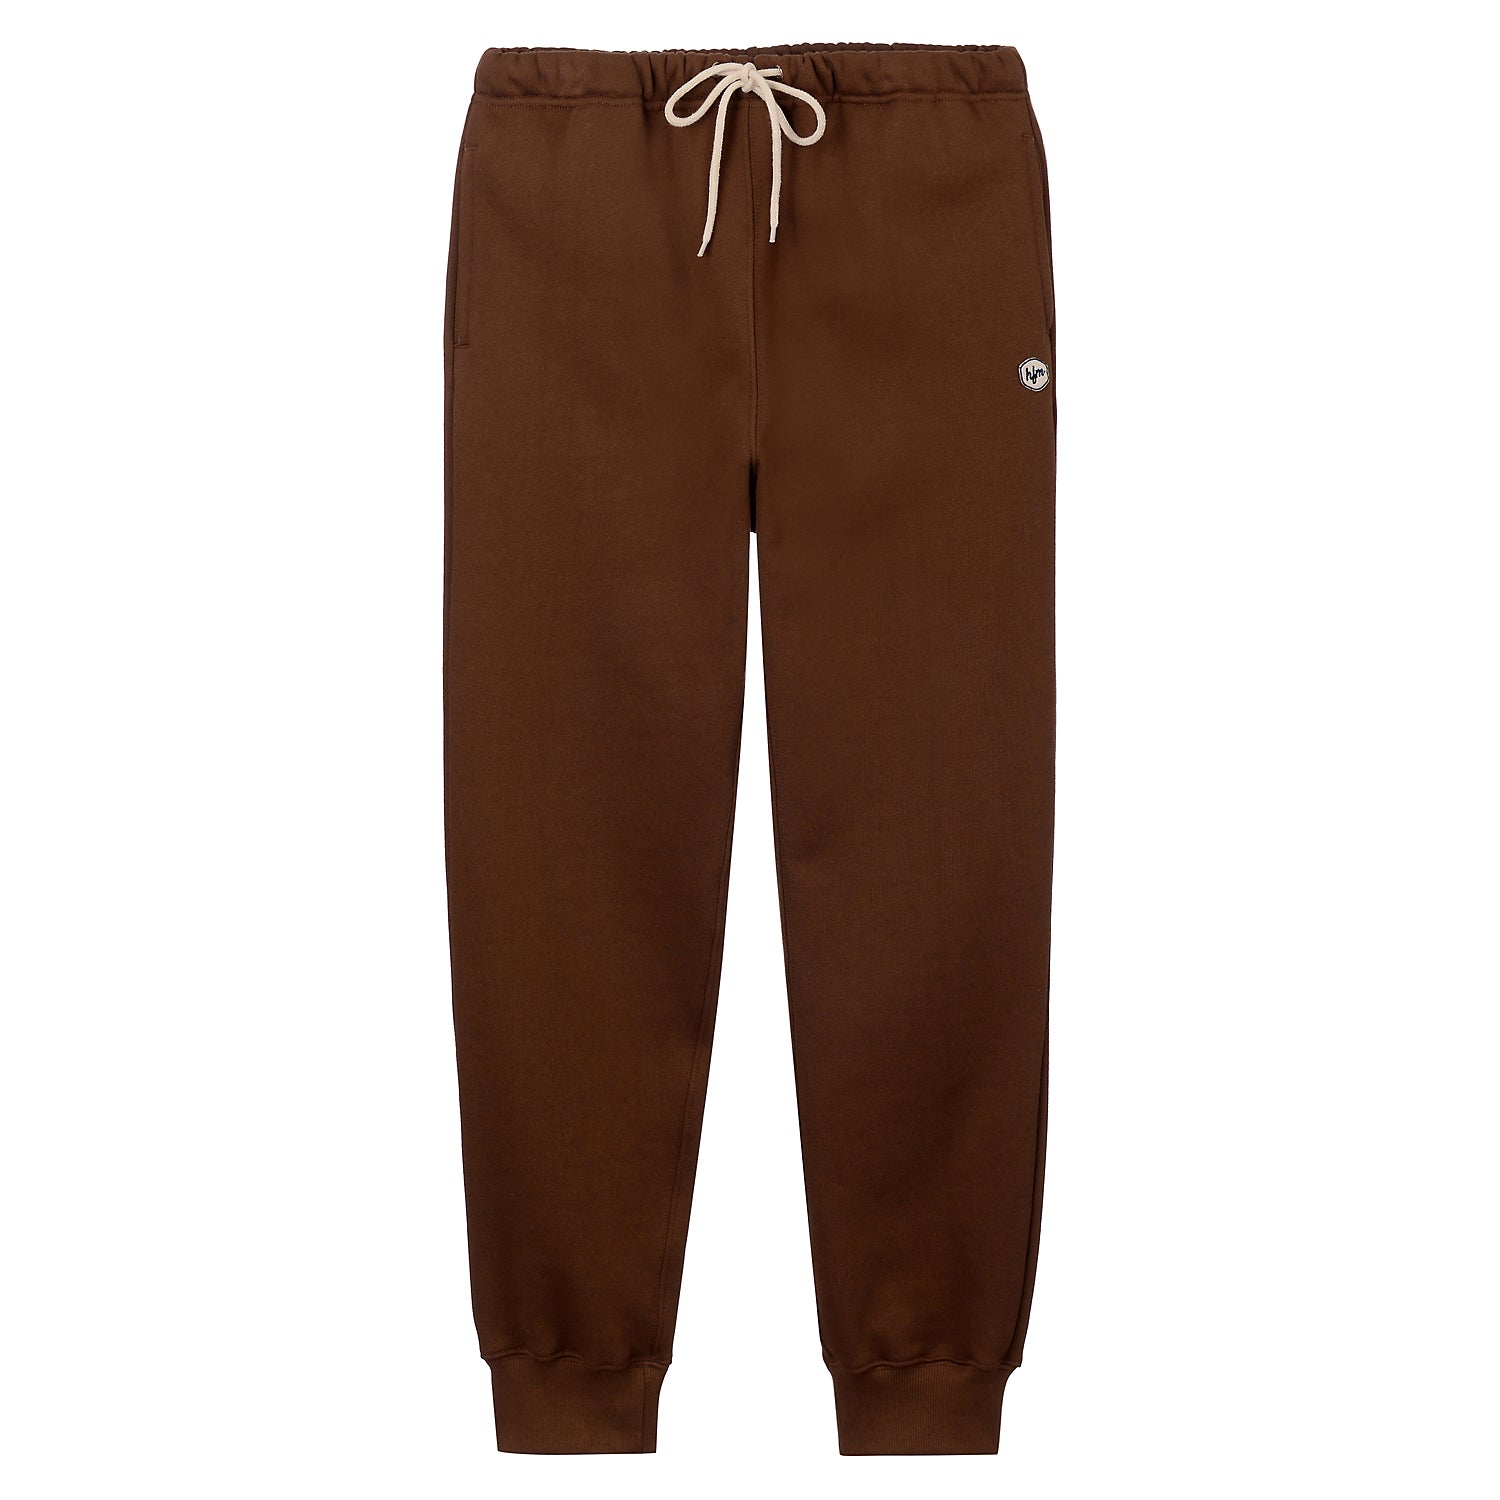 S'more sweat pants